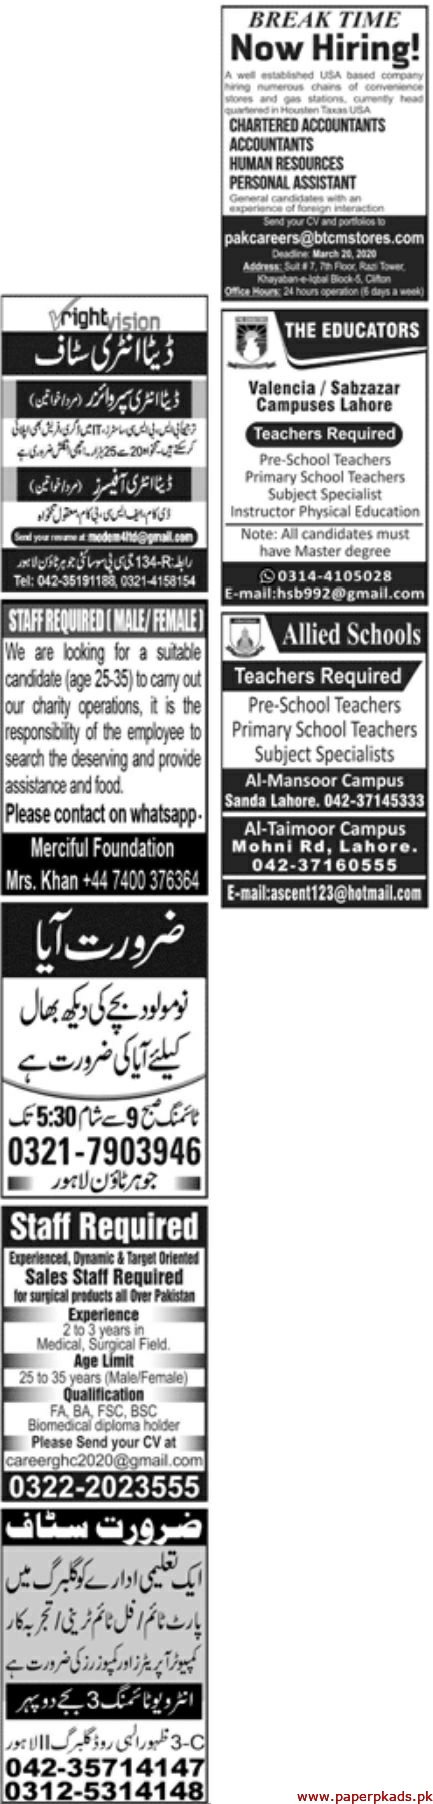 Jang Newspaper Paper Pk Jobs 01 March 2020 Latest